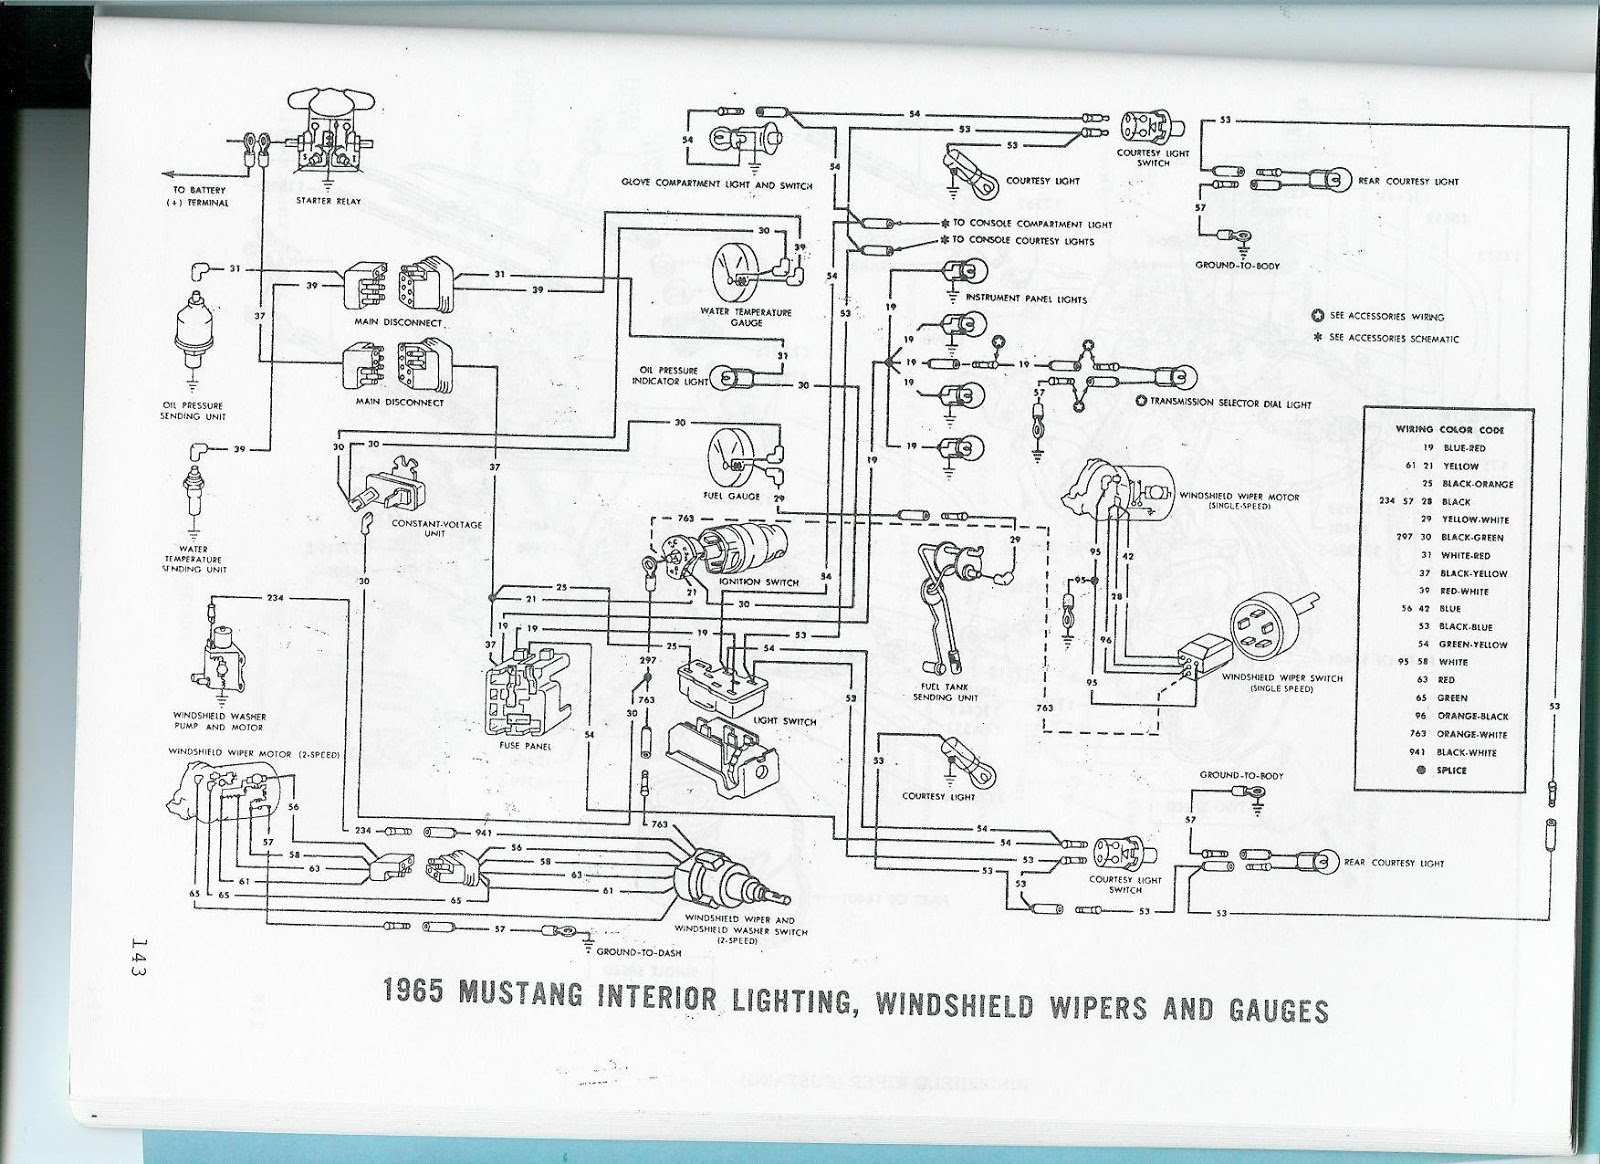 1964 chevelle fuse box diagram simple wiring diagram rh david huggett co uk